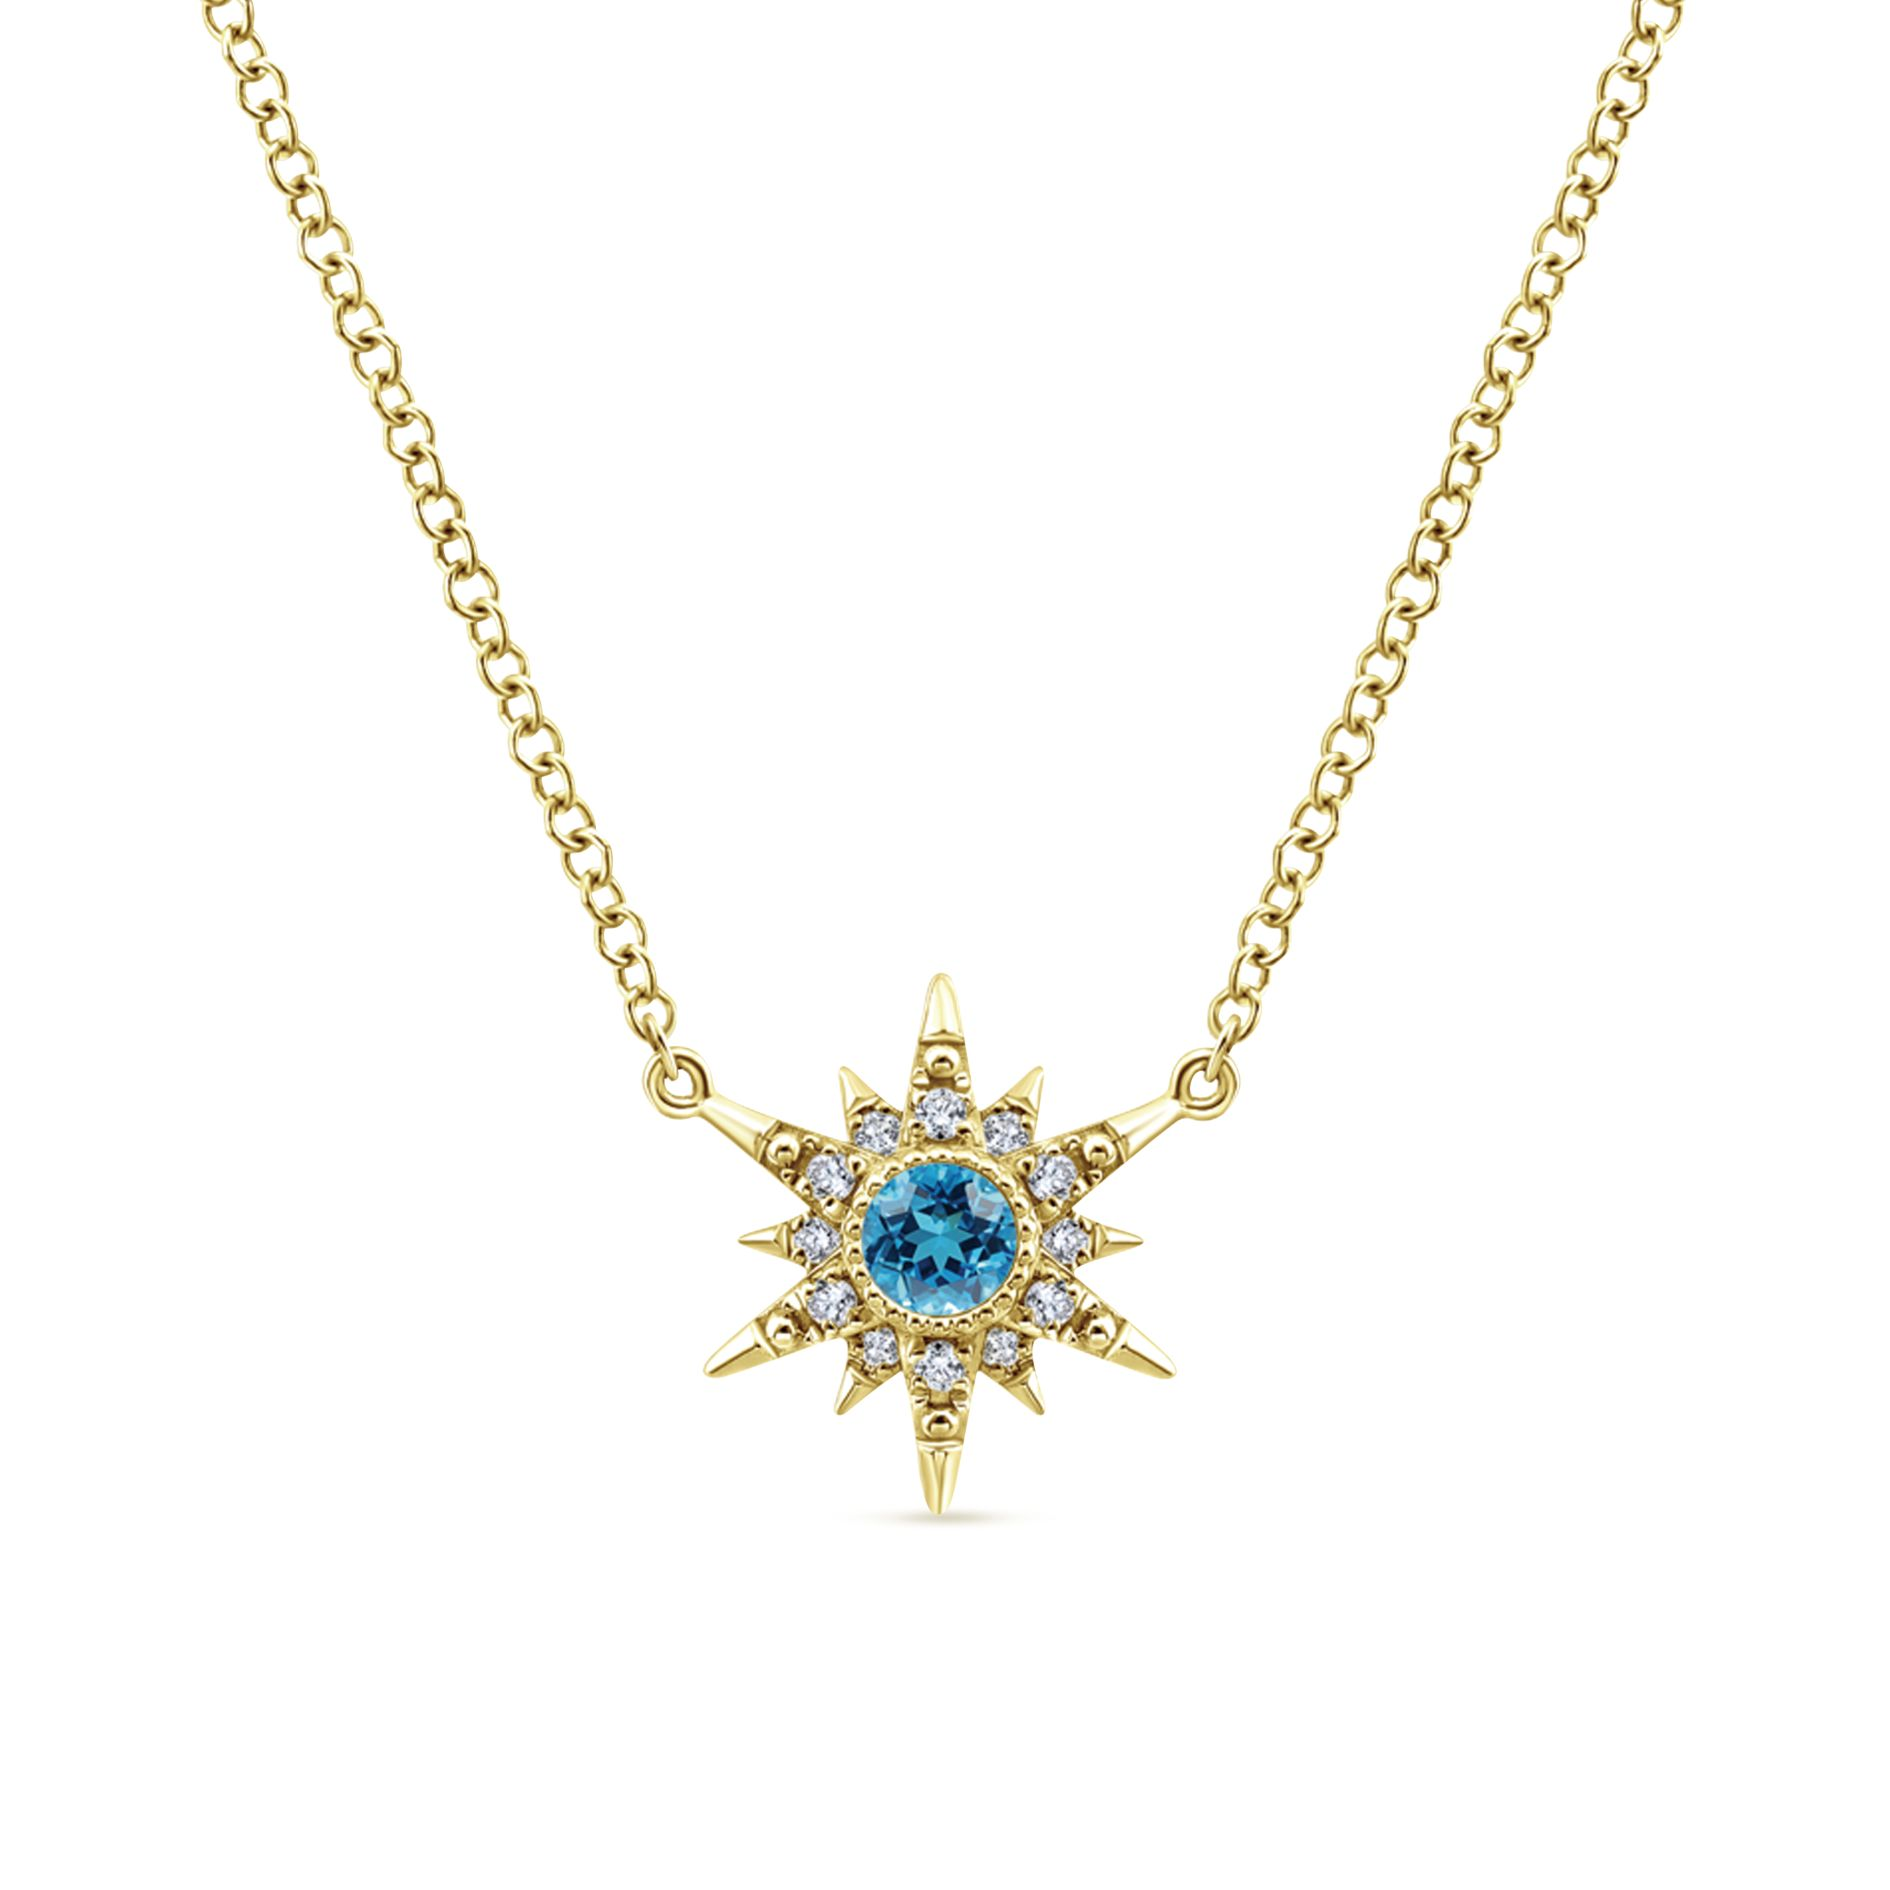 Necklaces - YELLOW GOLD FASHION DIAMOND SWISS BLUE TOPAZ NECKLACE